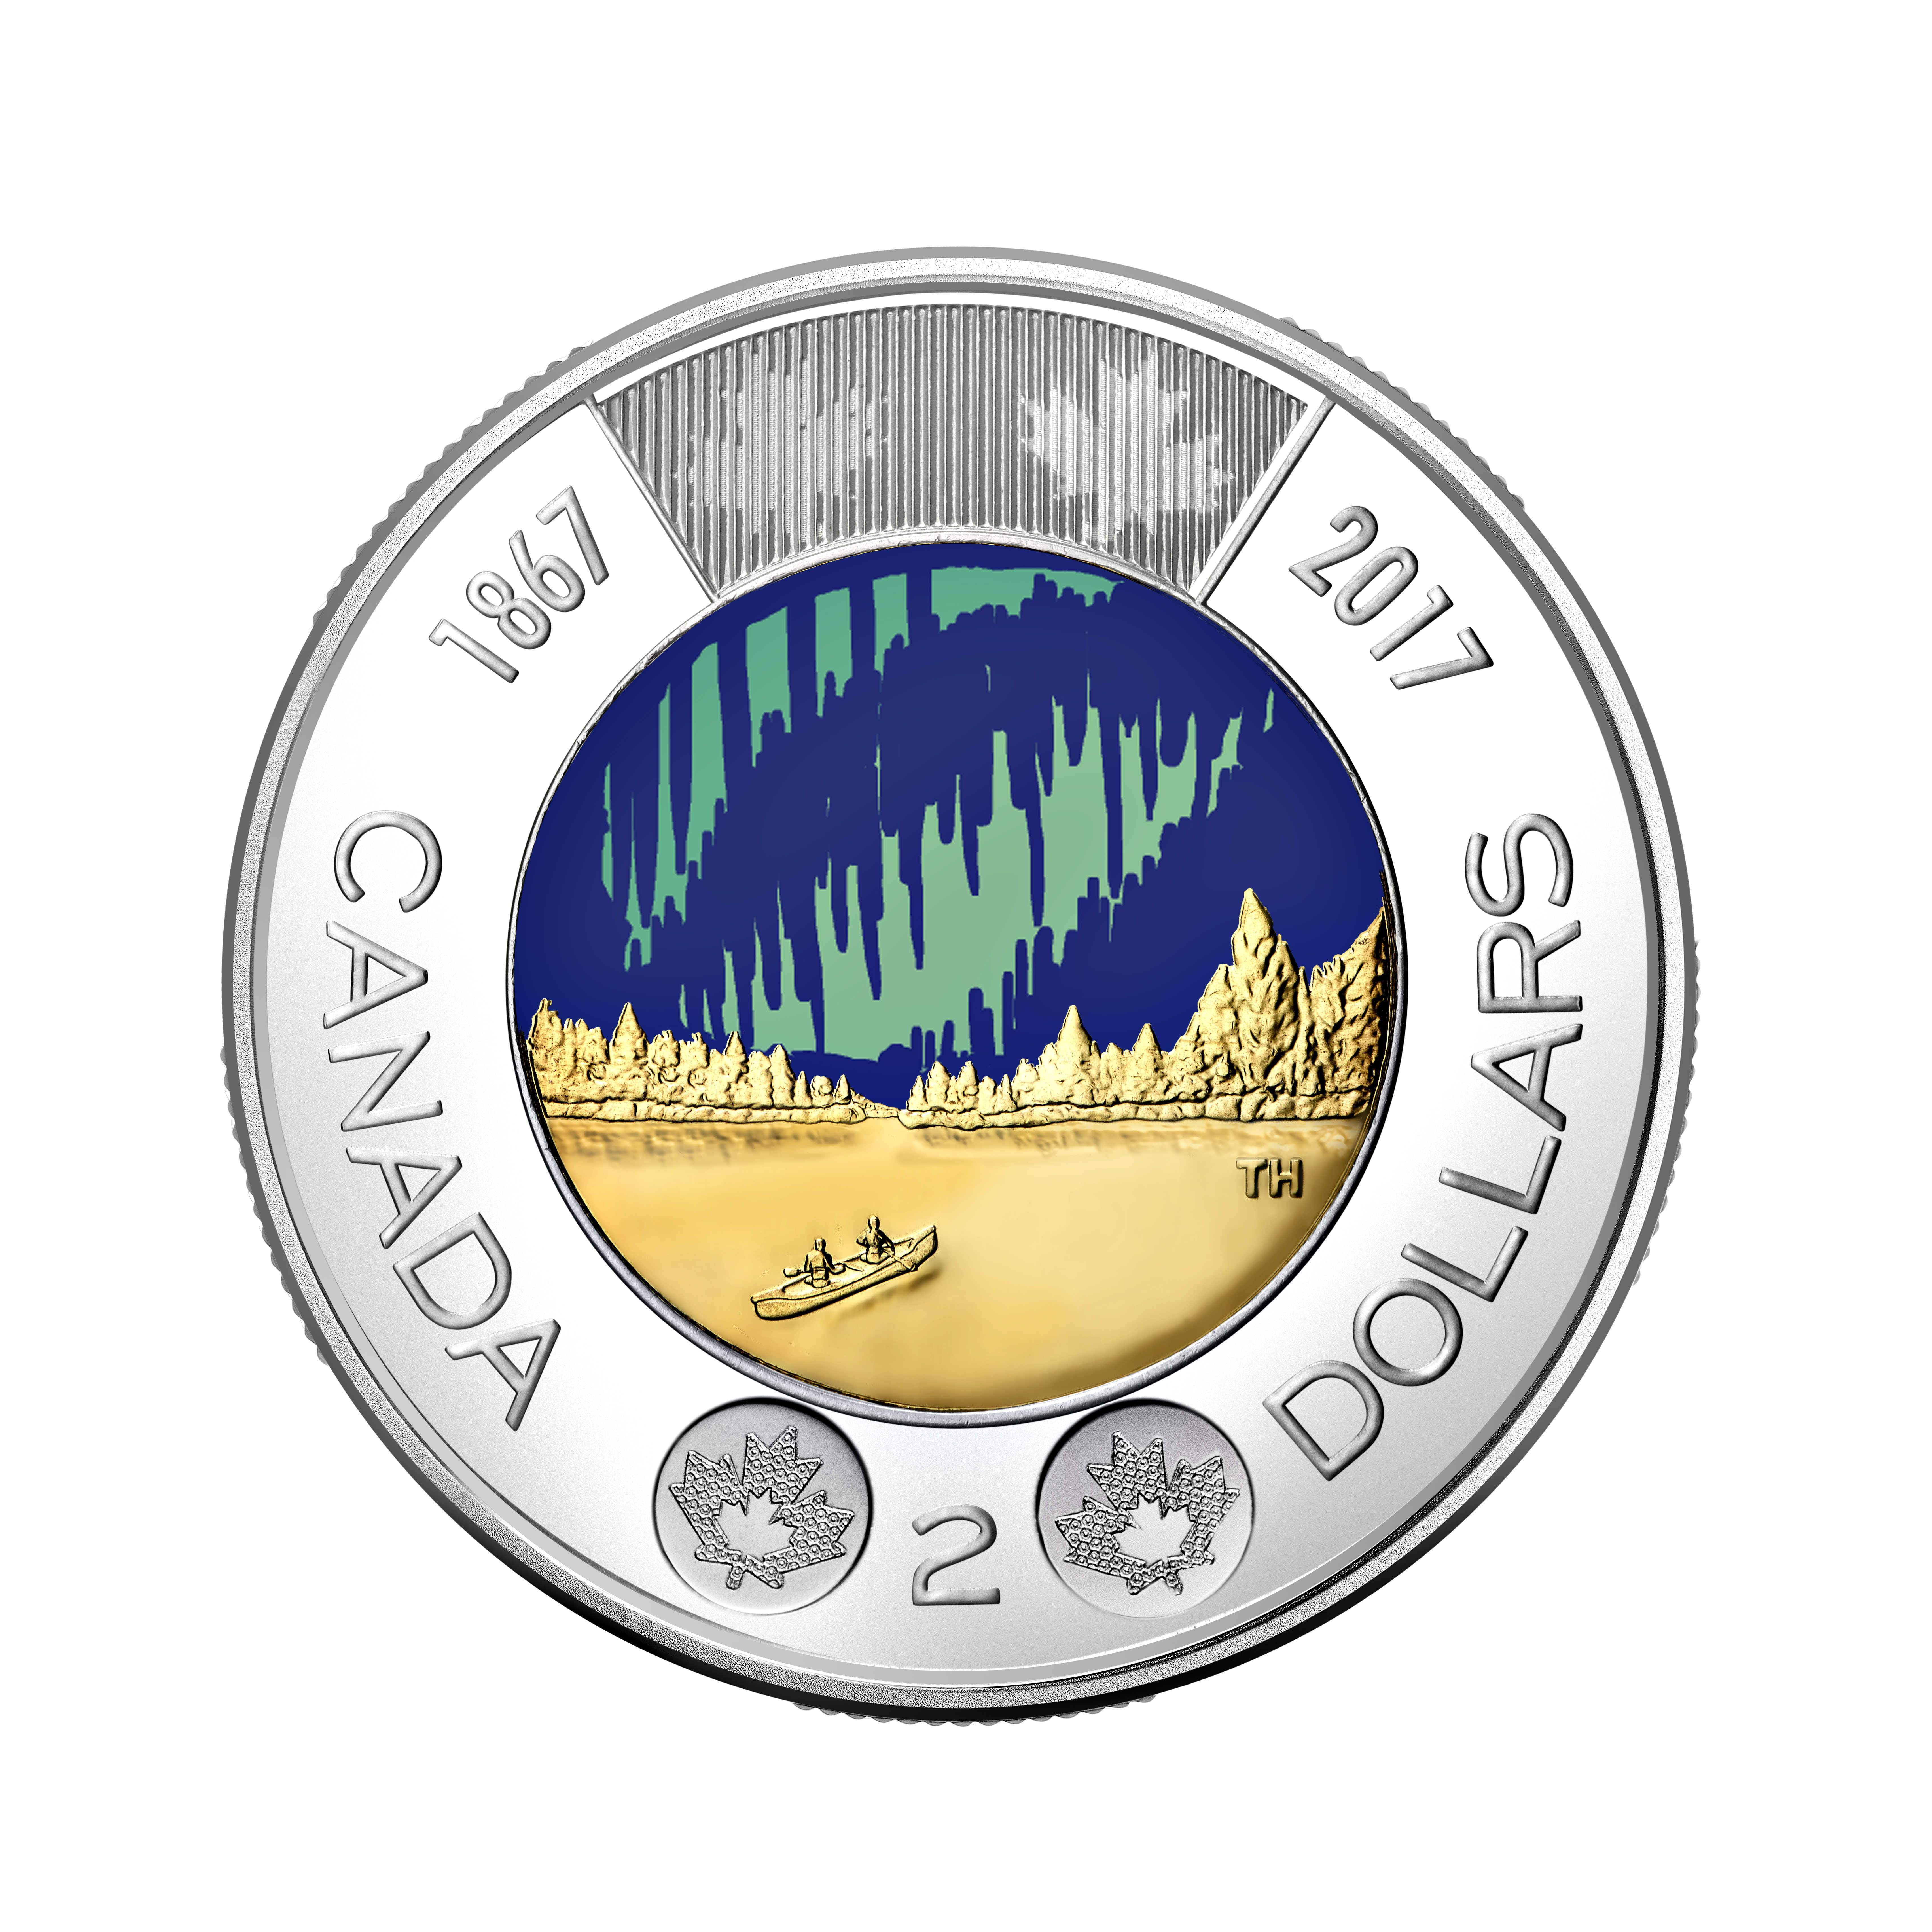 Check out Canada's new 'toonie', the first glow-in-the-dark coin in circulation